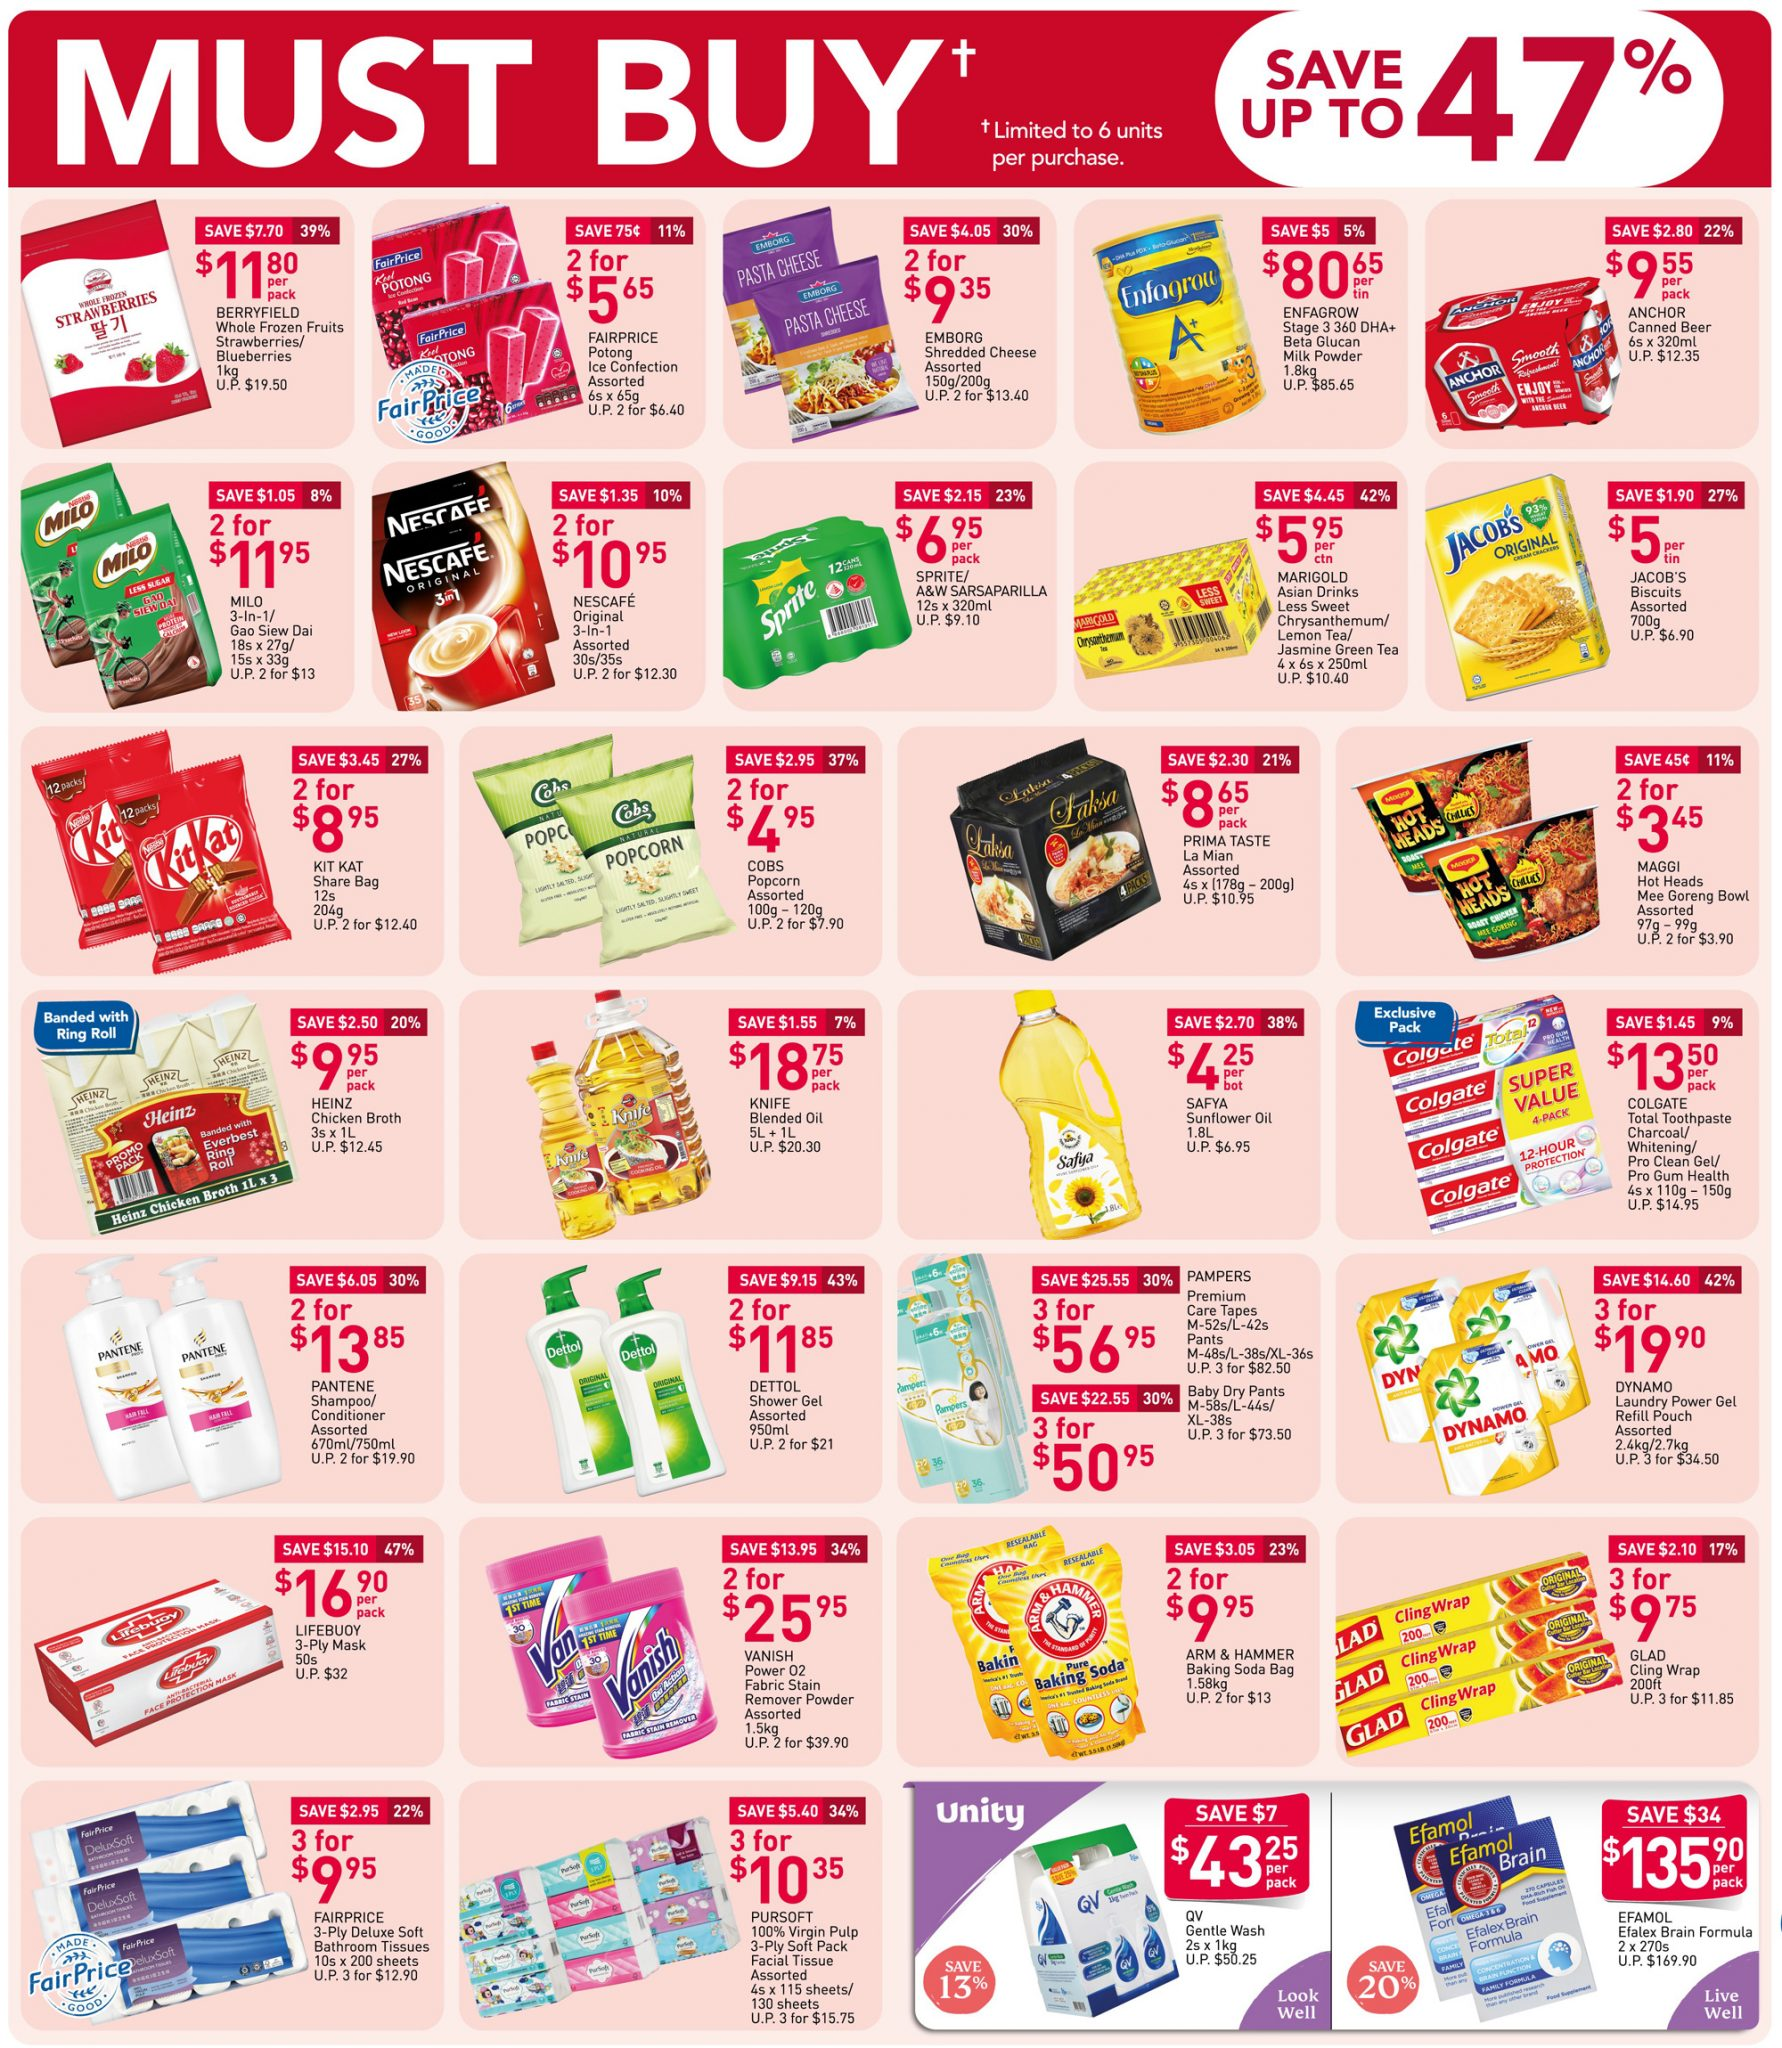 FairPrice must-buy items from now will 4 November 2020